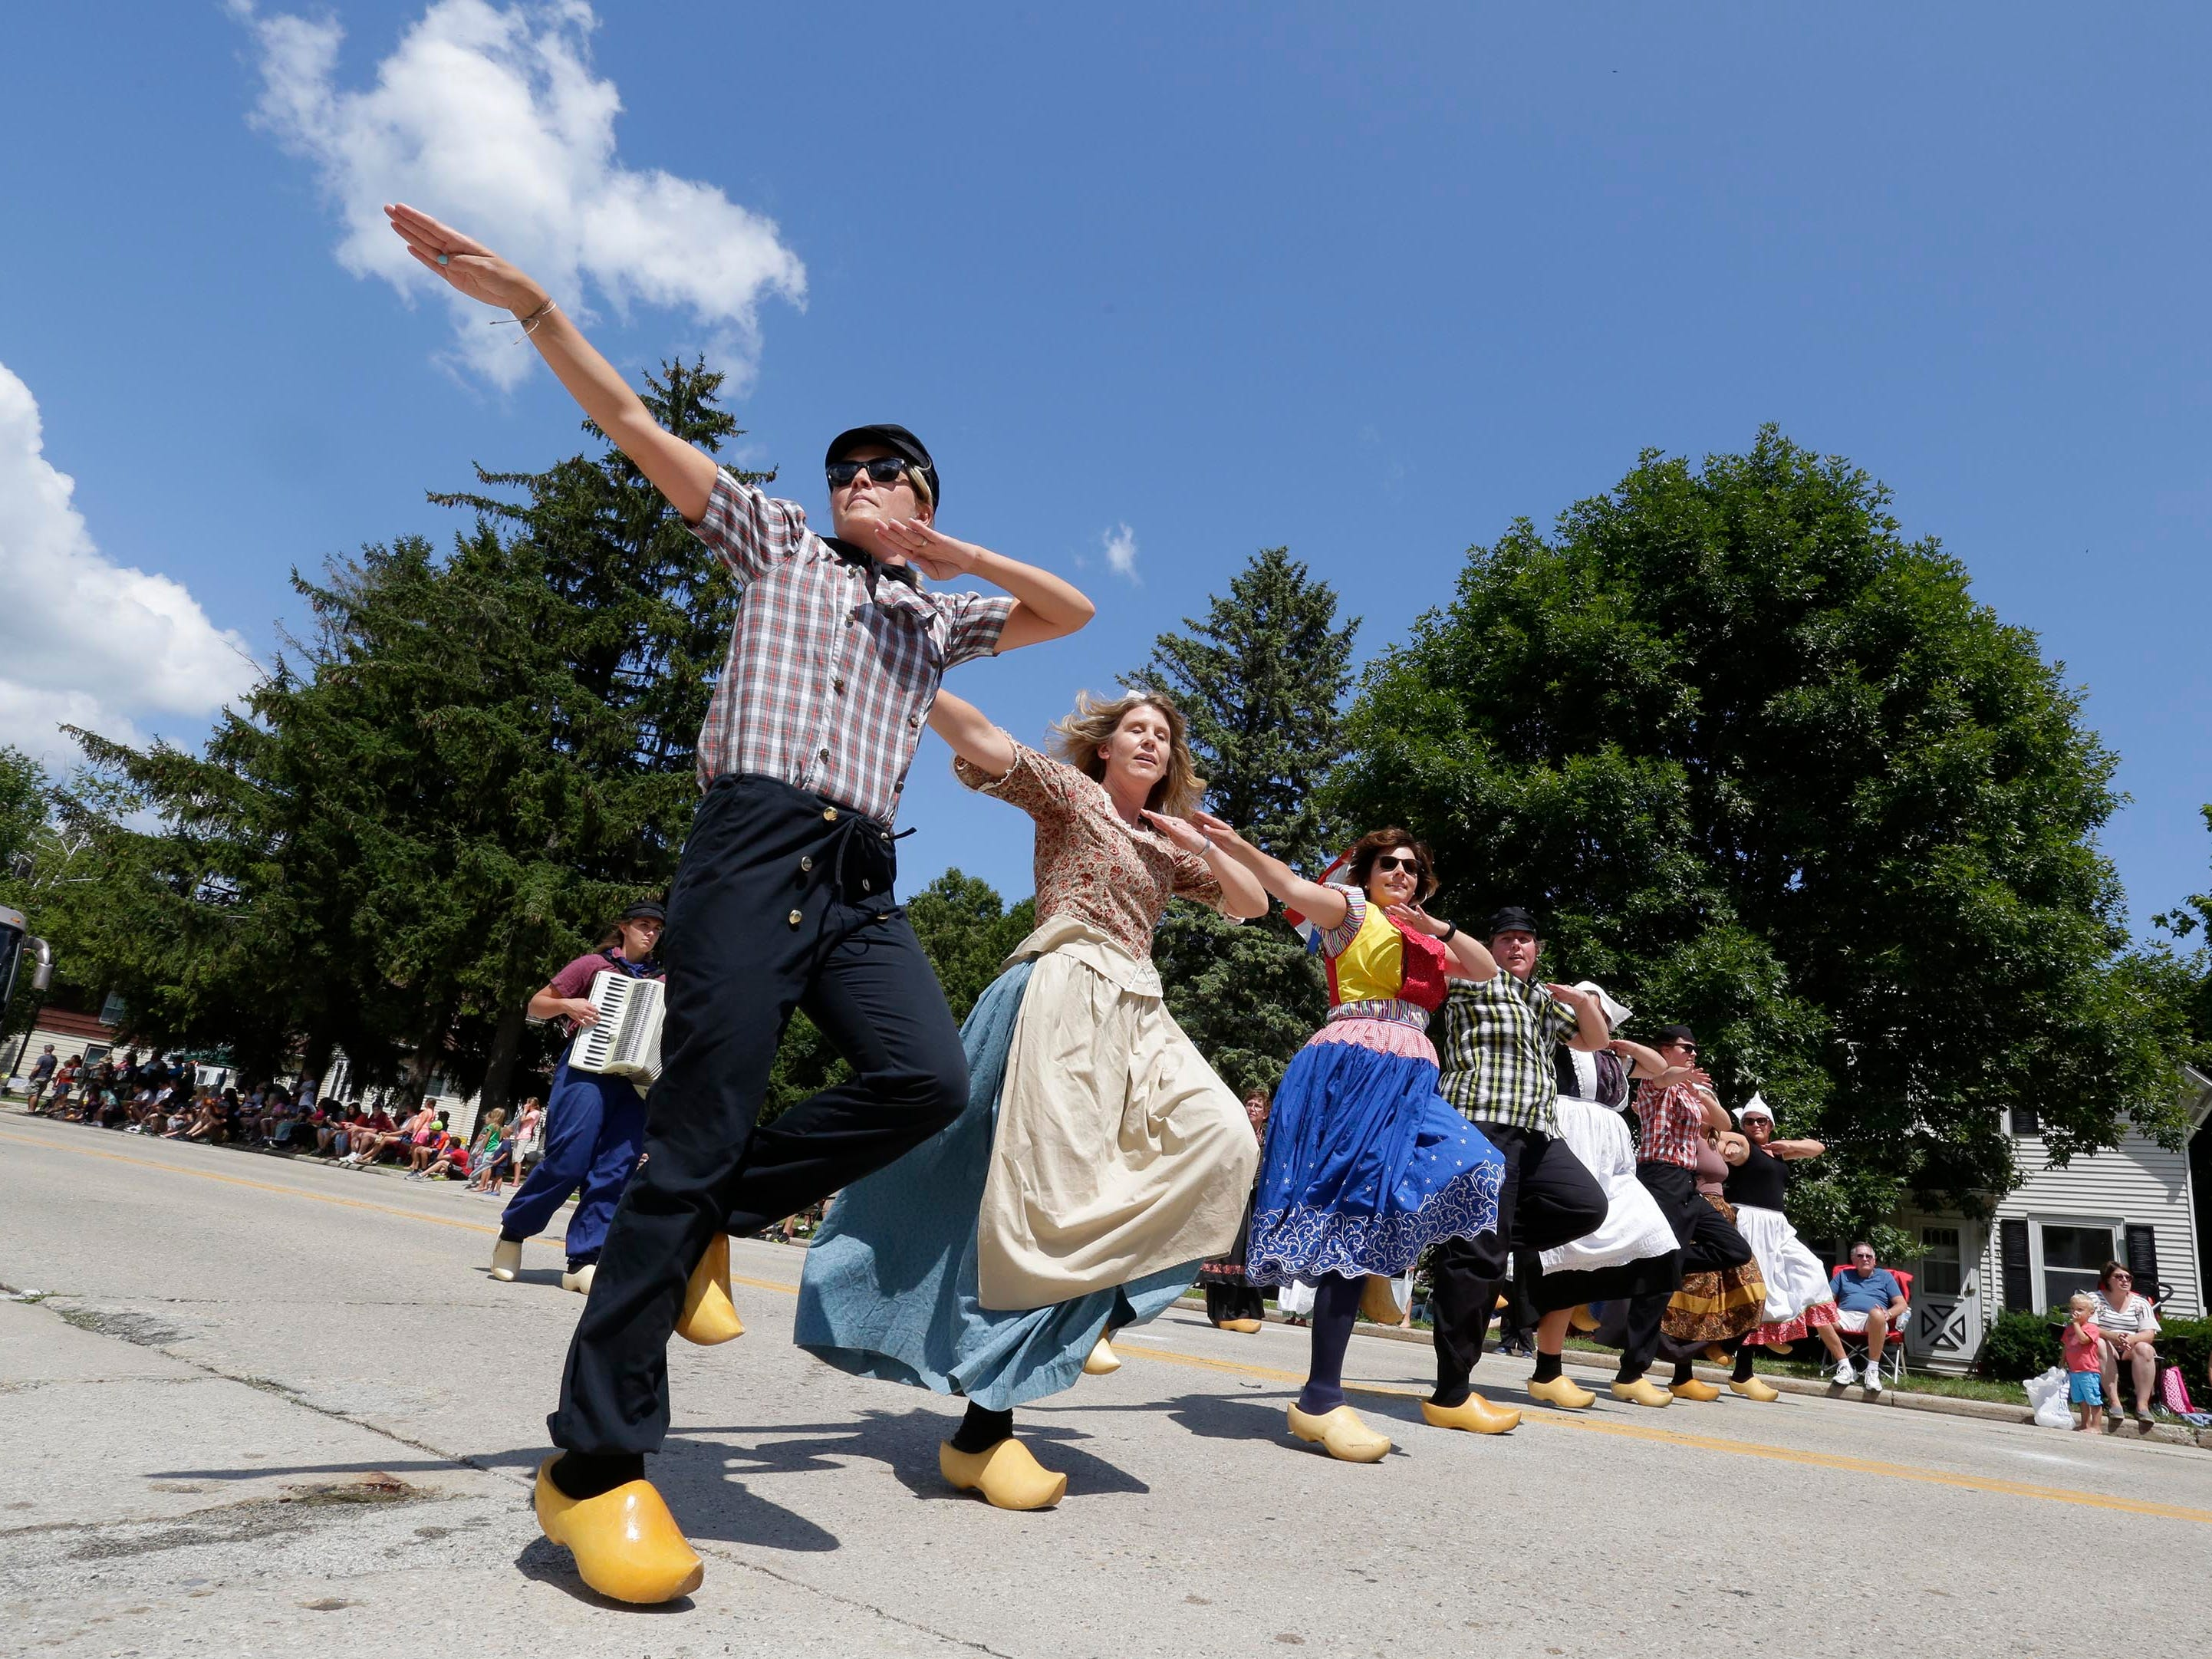 Klompen dancers perform during the 71st Annual Holland Festival parade, Saturday, July 28, 2018, in Cedar Grove, Wis.